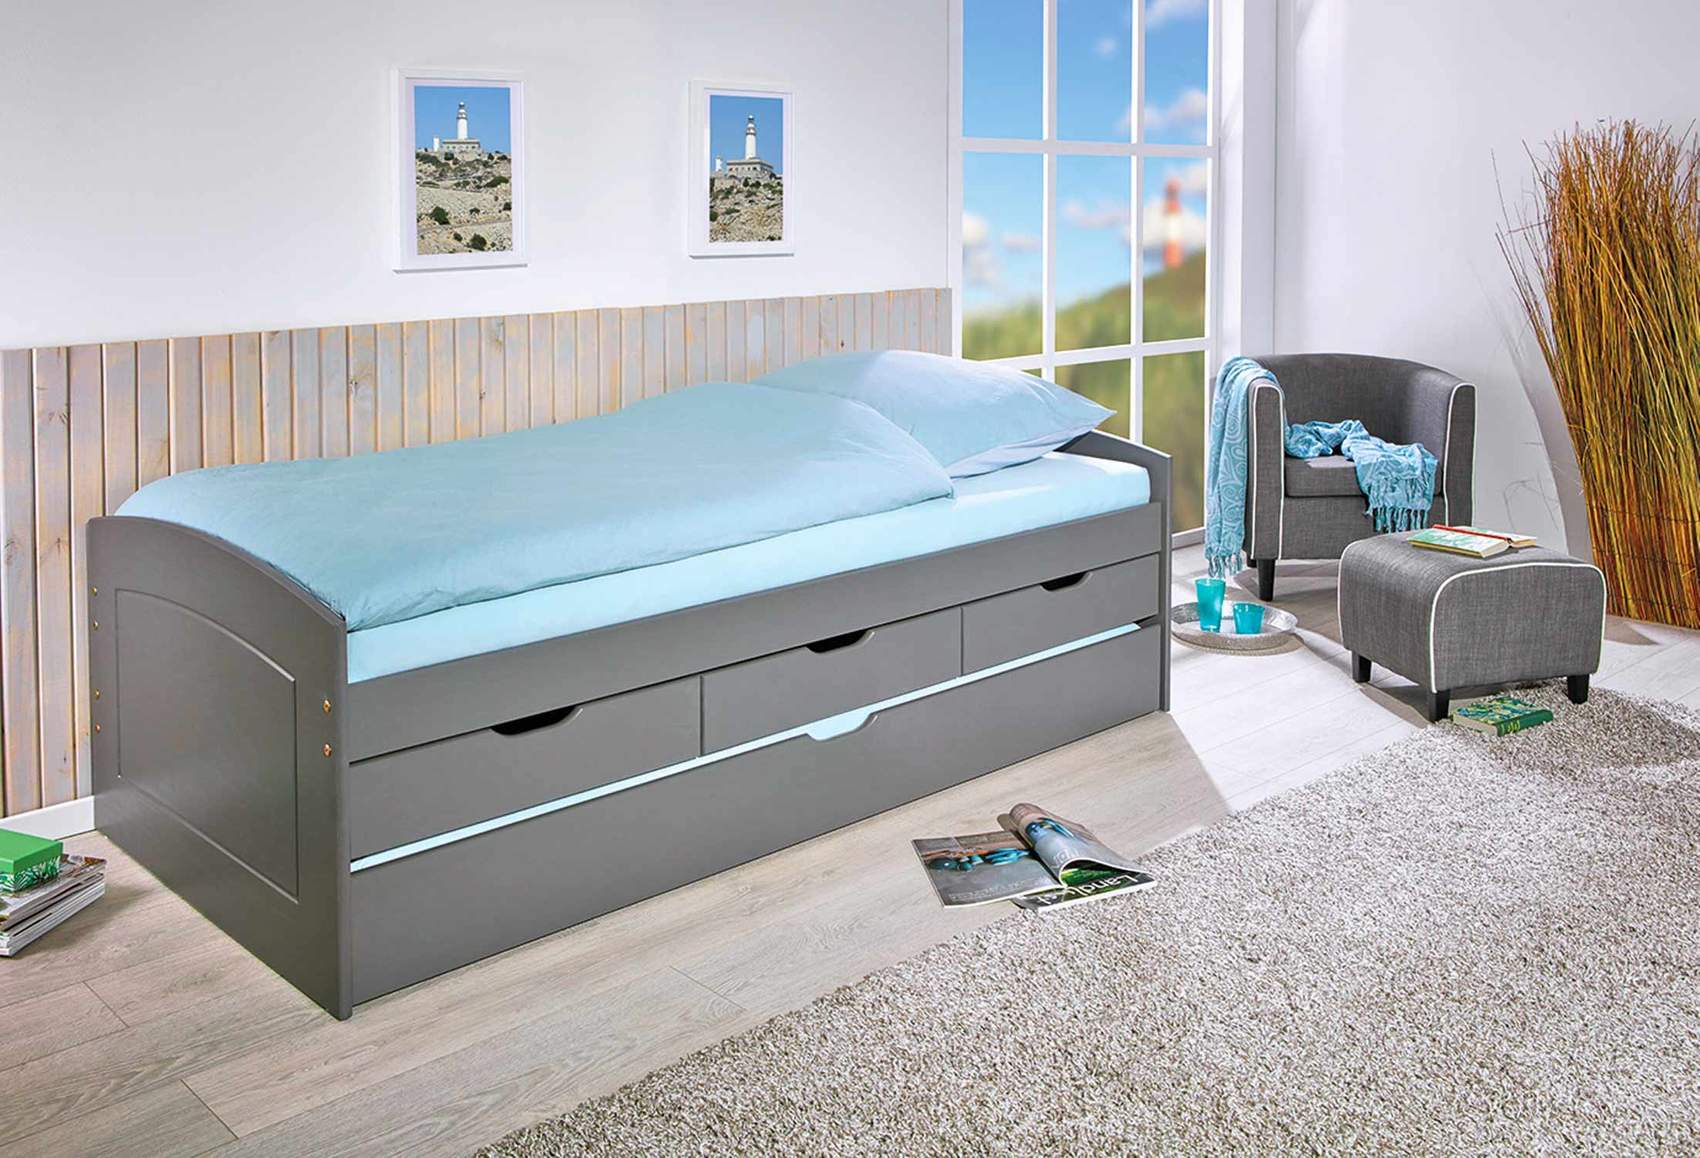 kinderbett funktionsbett rieka grau 90 x 200 kiefer massivholz. Black Bedroom Furniture Sets. Home Design Ideas